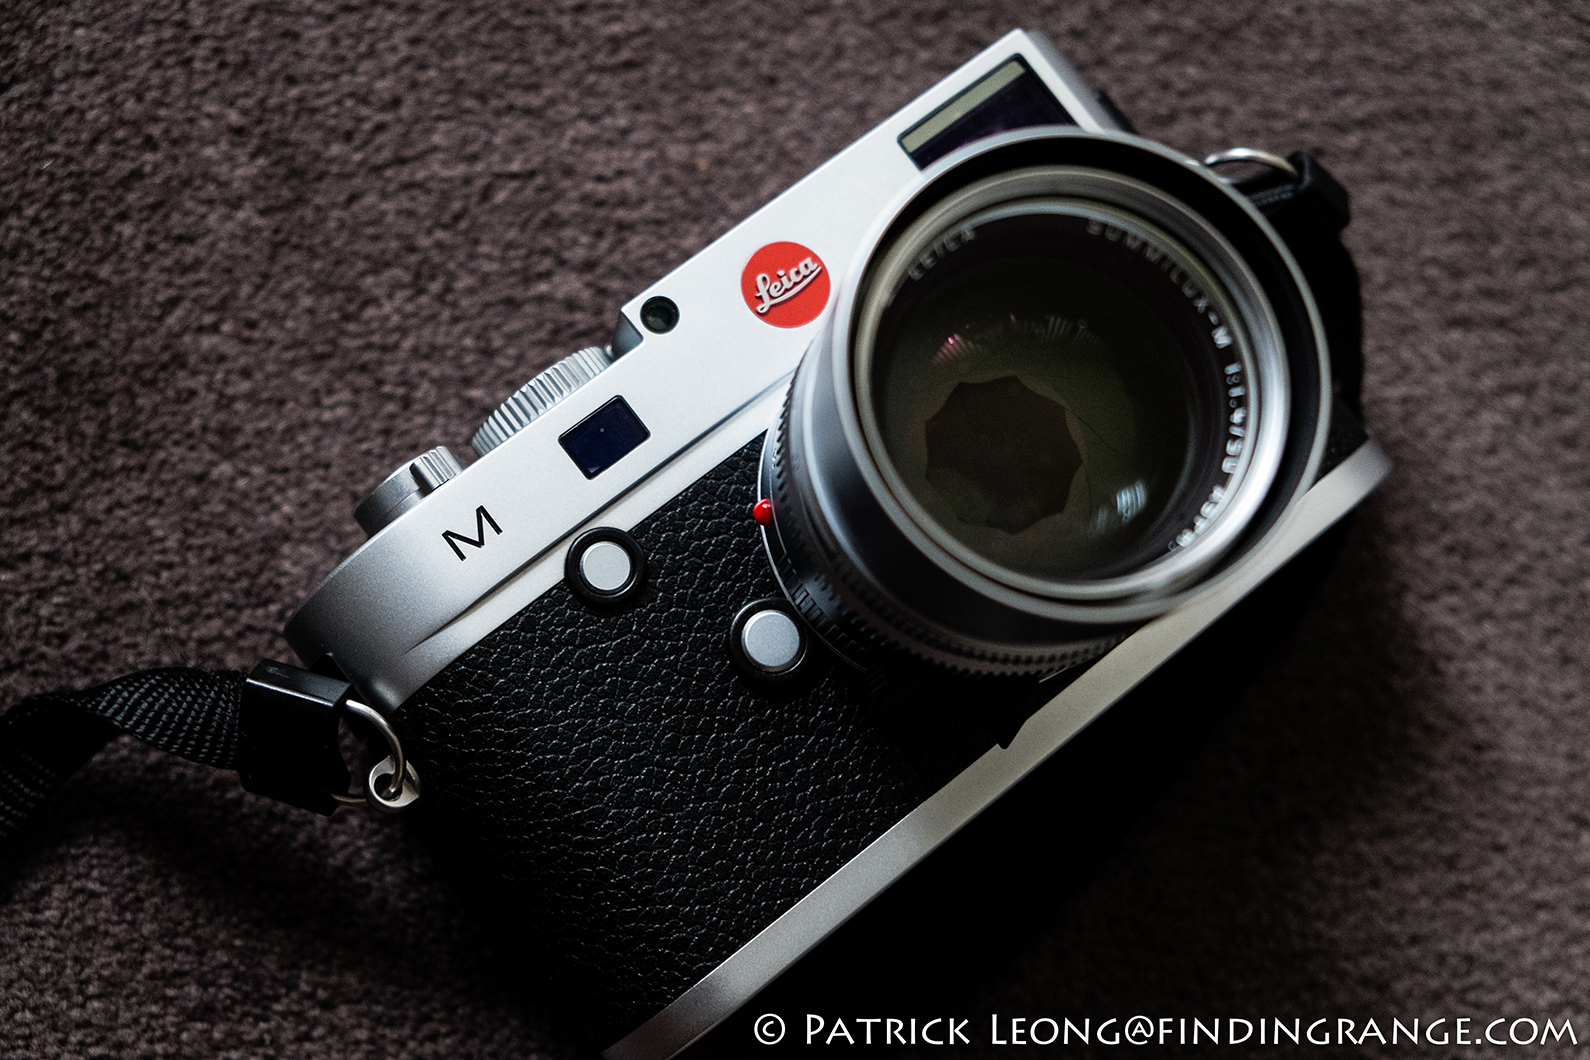 Leica-M-Typ-240-50mm-Sumiilux-ASPH-F1.4